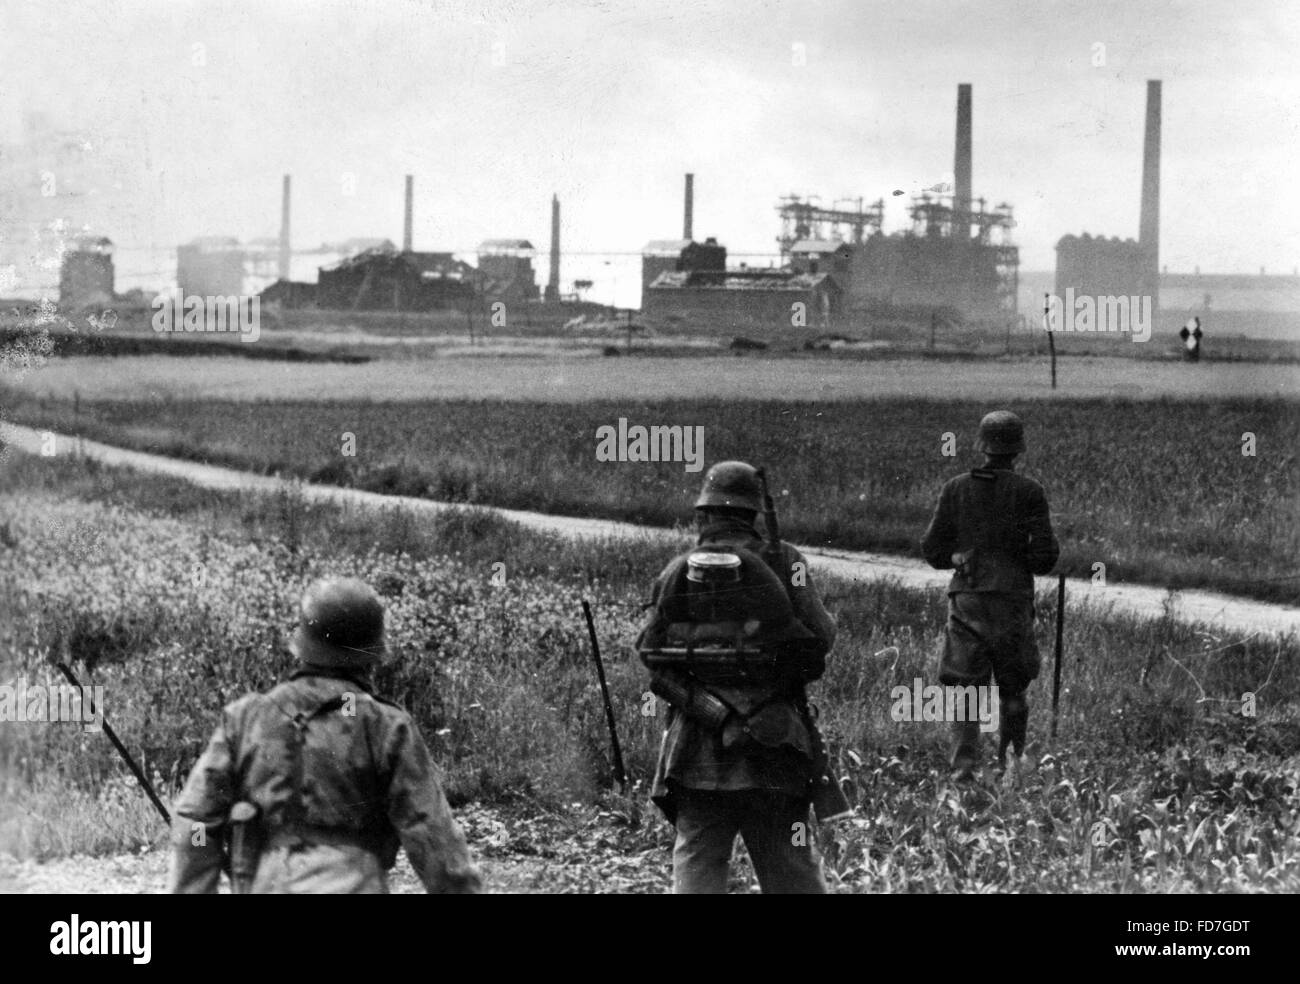 Reconnaissance unit of the Wehrmacht in Normandy, 1944 - Stock Image